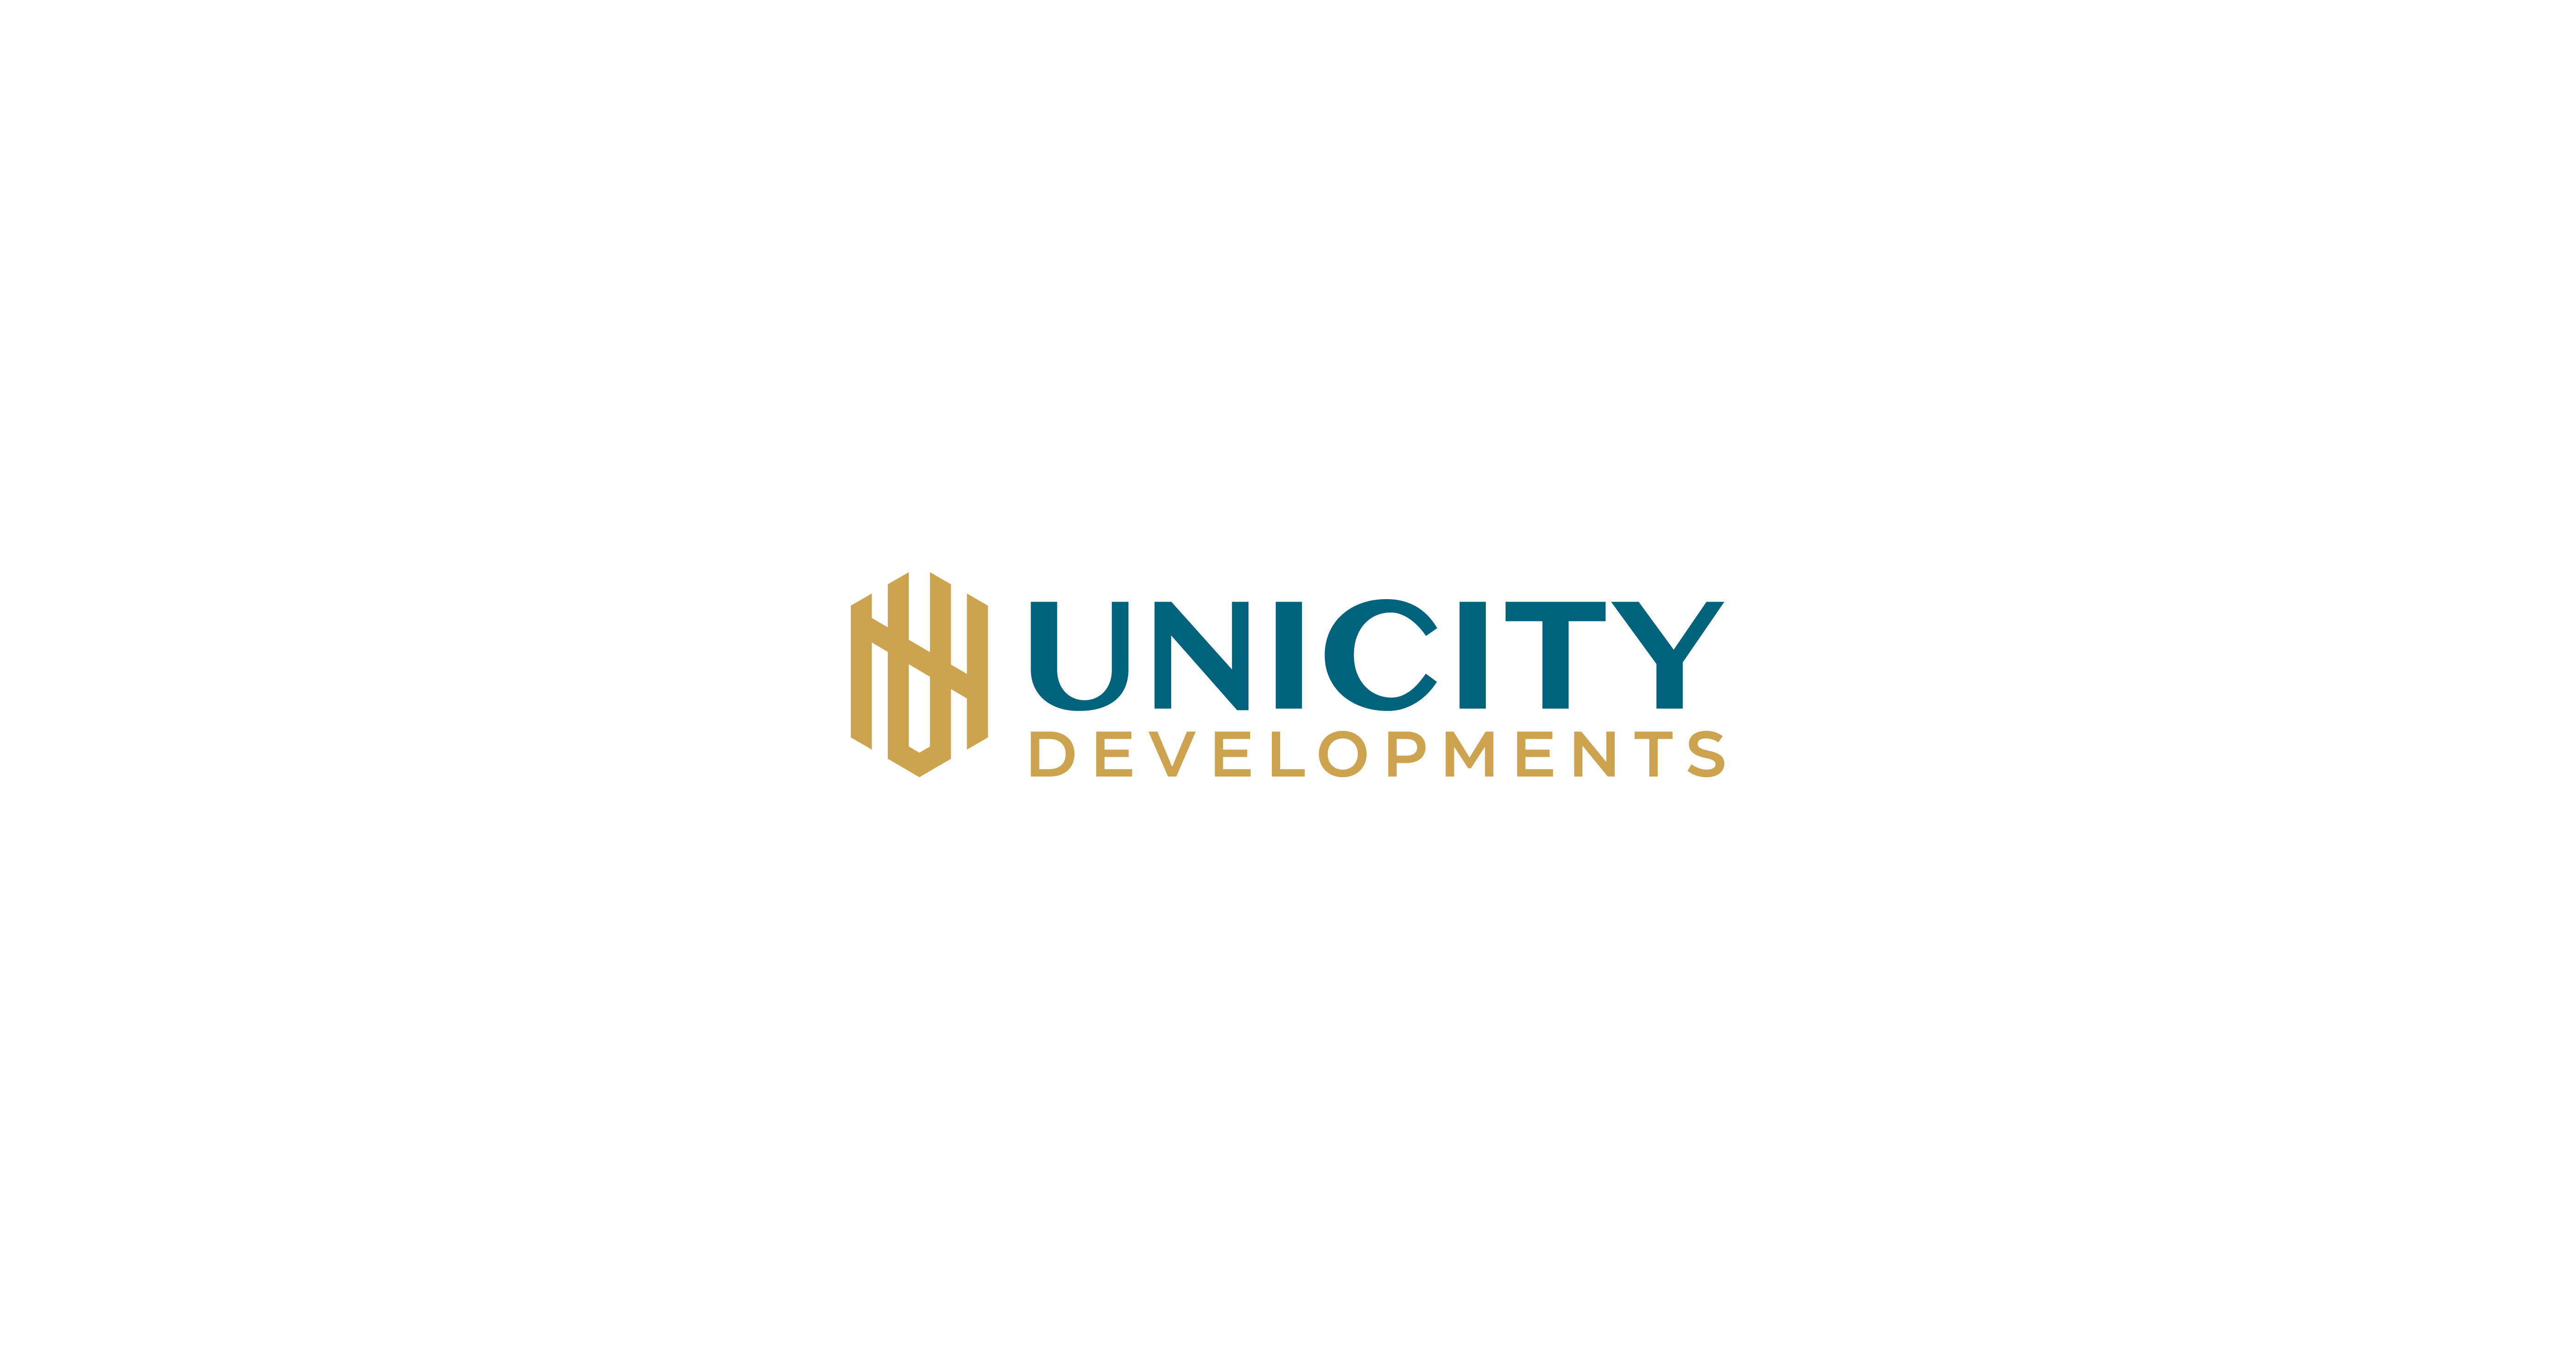 صورة Job: Senior Graphic Designer at Unicity in Cairo, Egypt